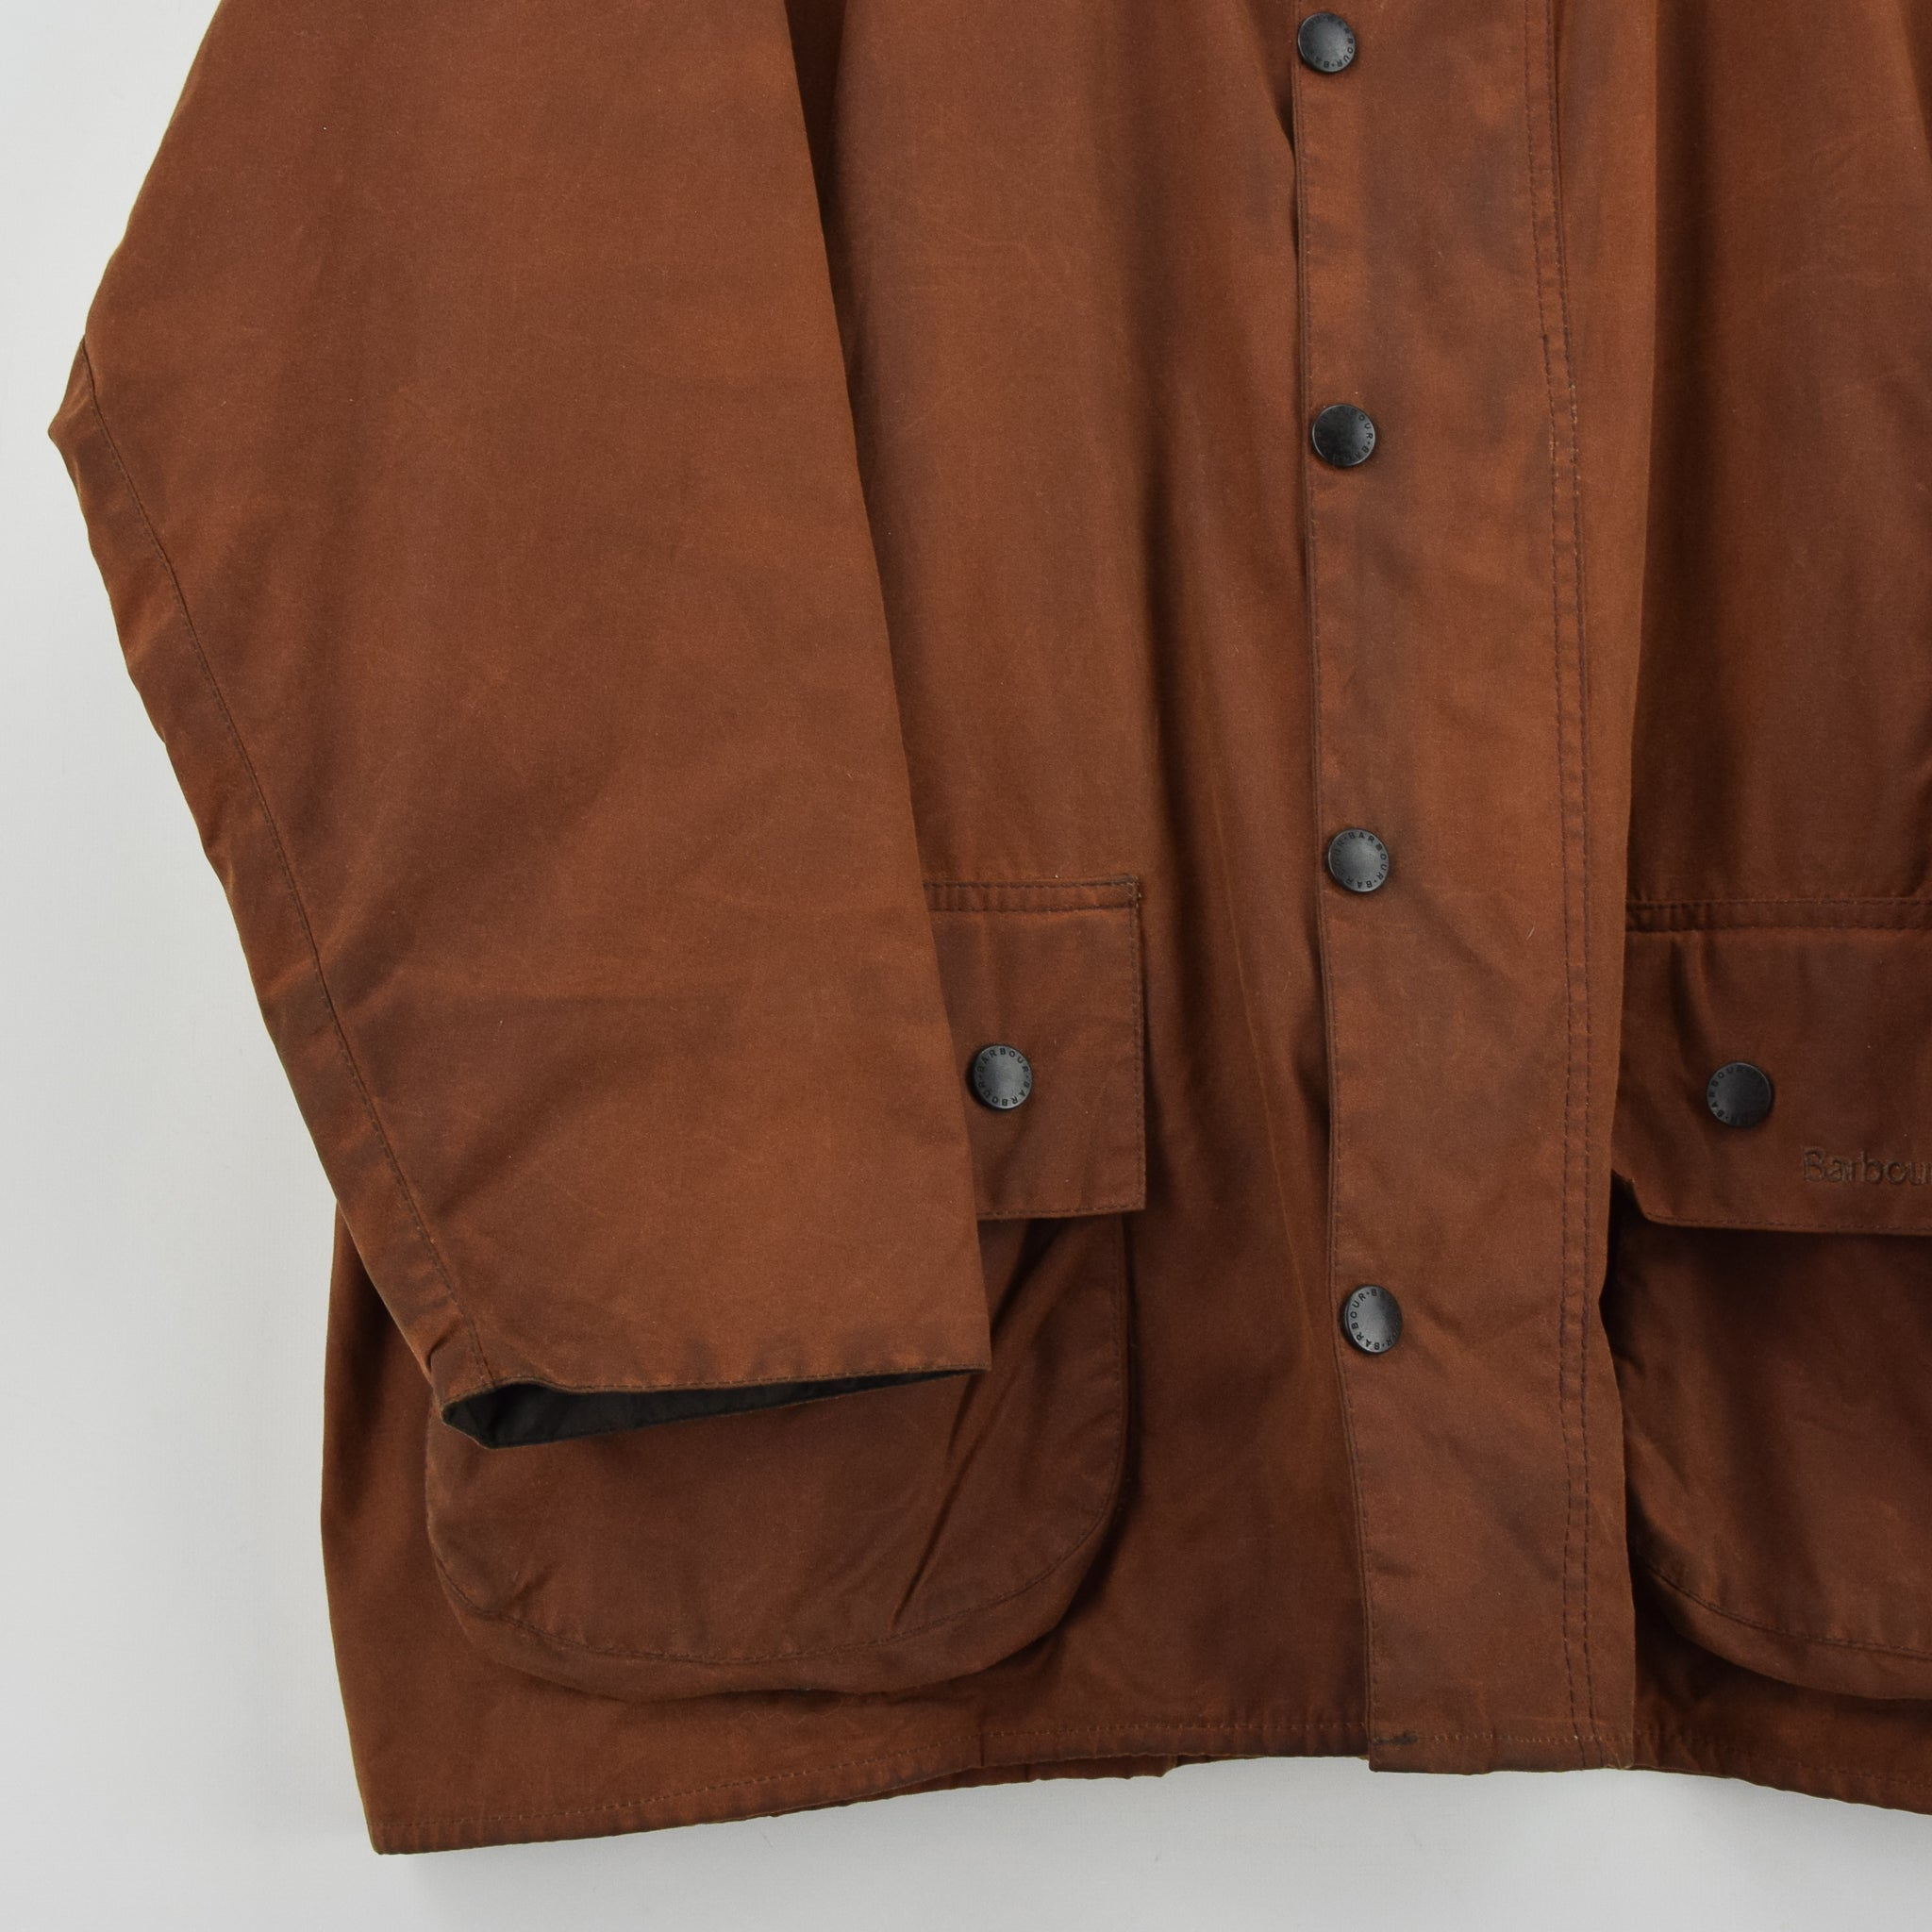 Vintage Barbour A831 Classic Beaufort Brown Wax Jacket Made In England XXL front hem